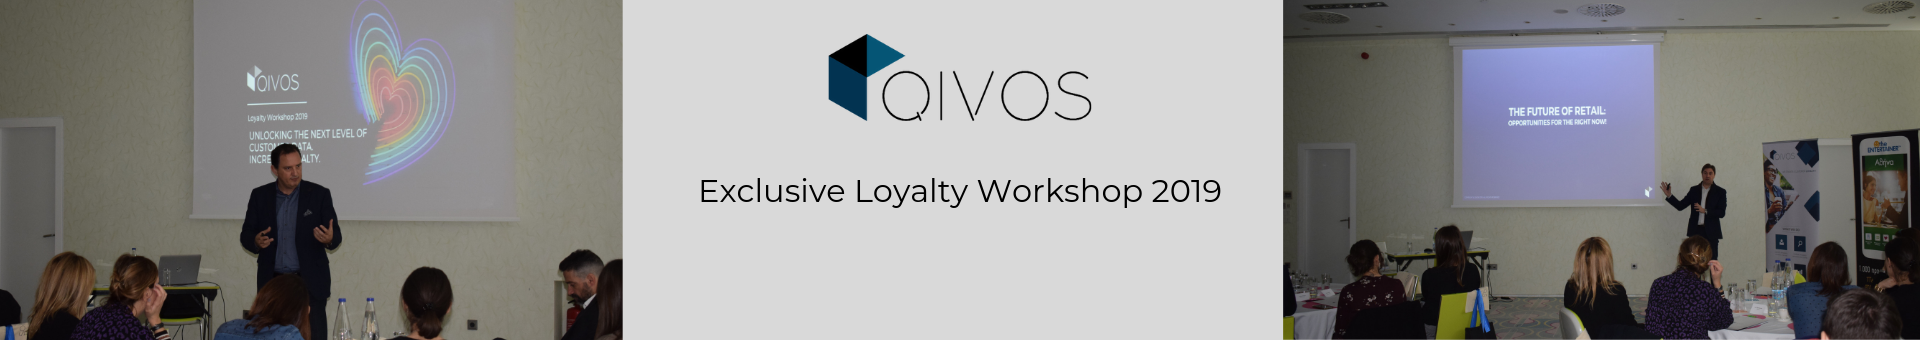 QIVOS LOYALTY WORKSHOP 2019